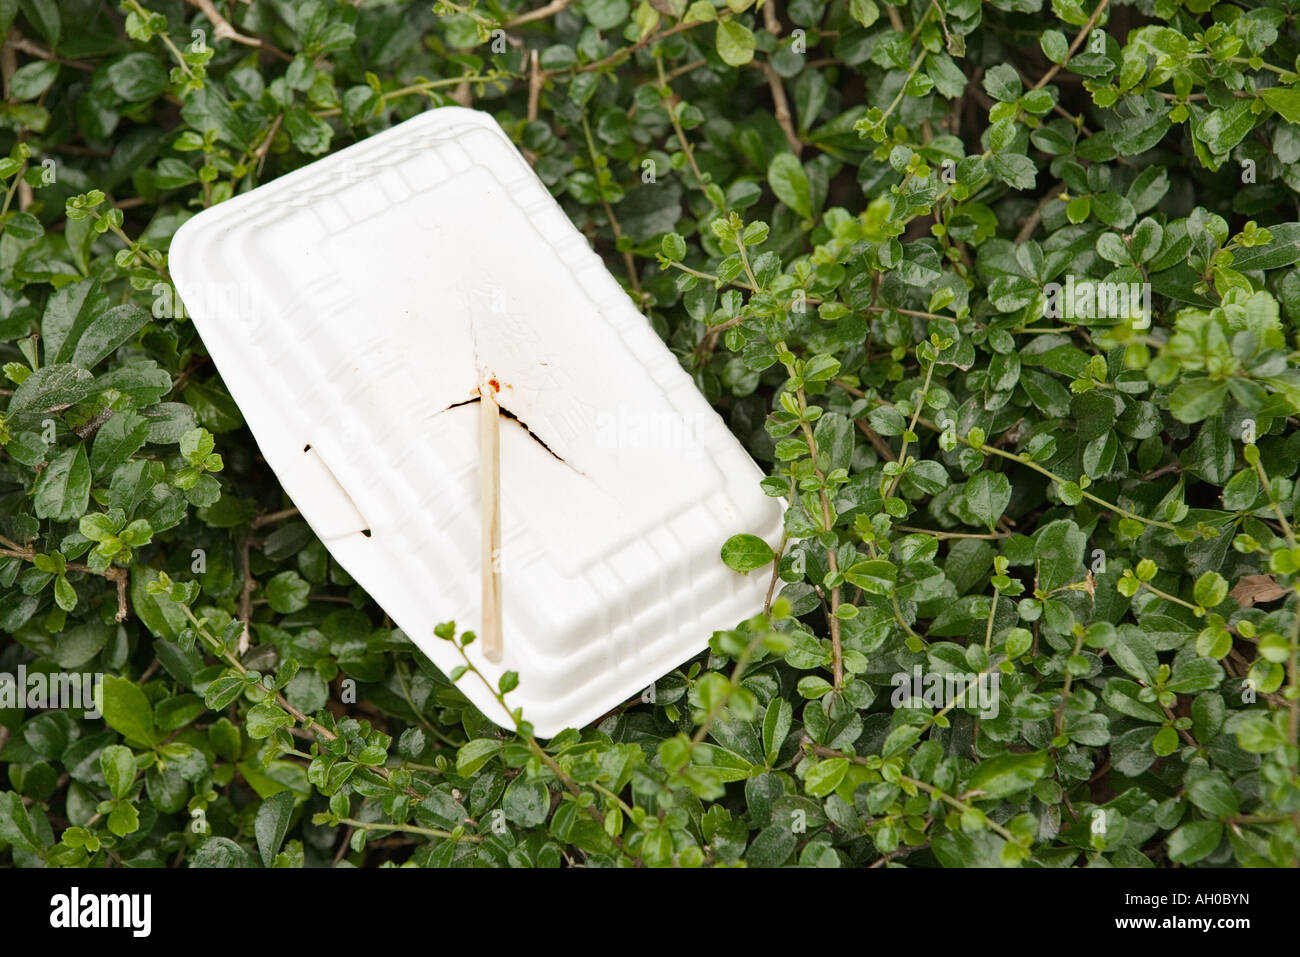 Polystyrene container and chopsticks littering bushes - Stock Image